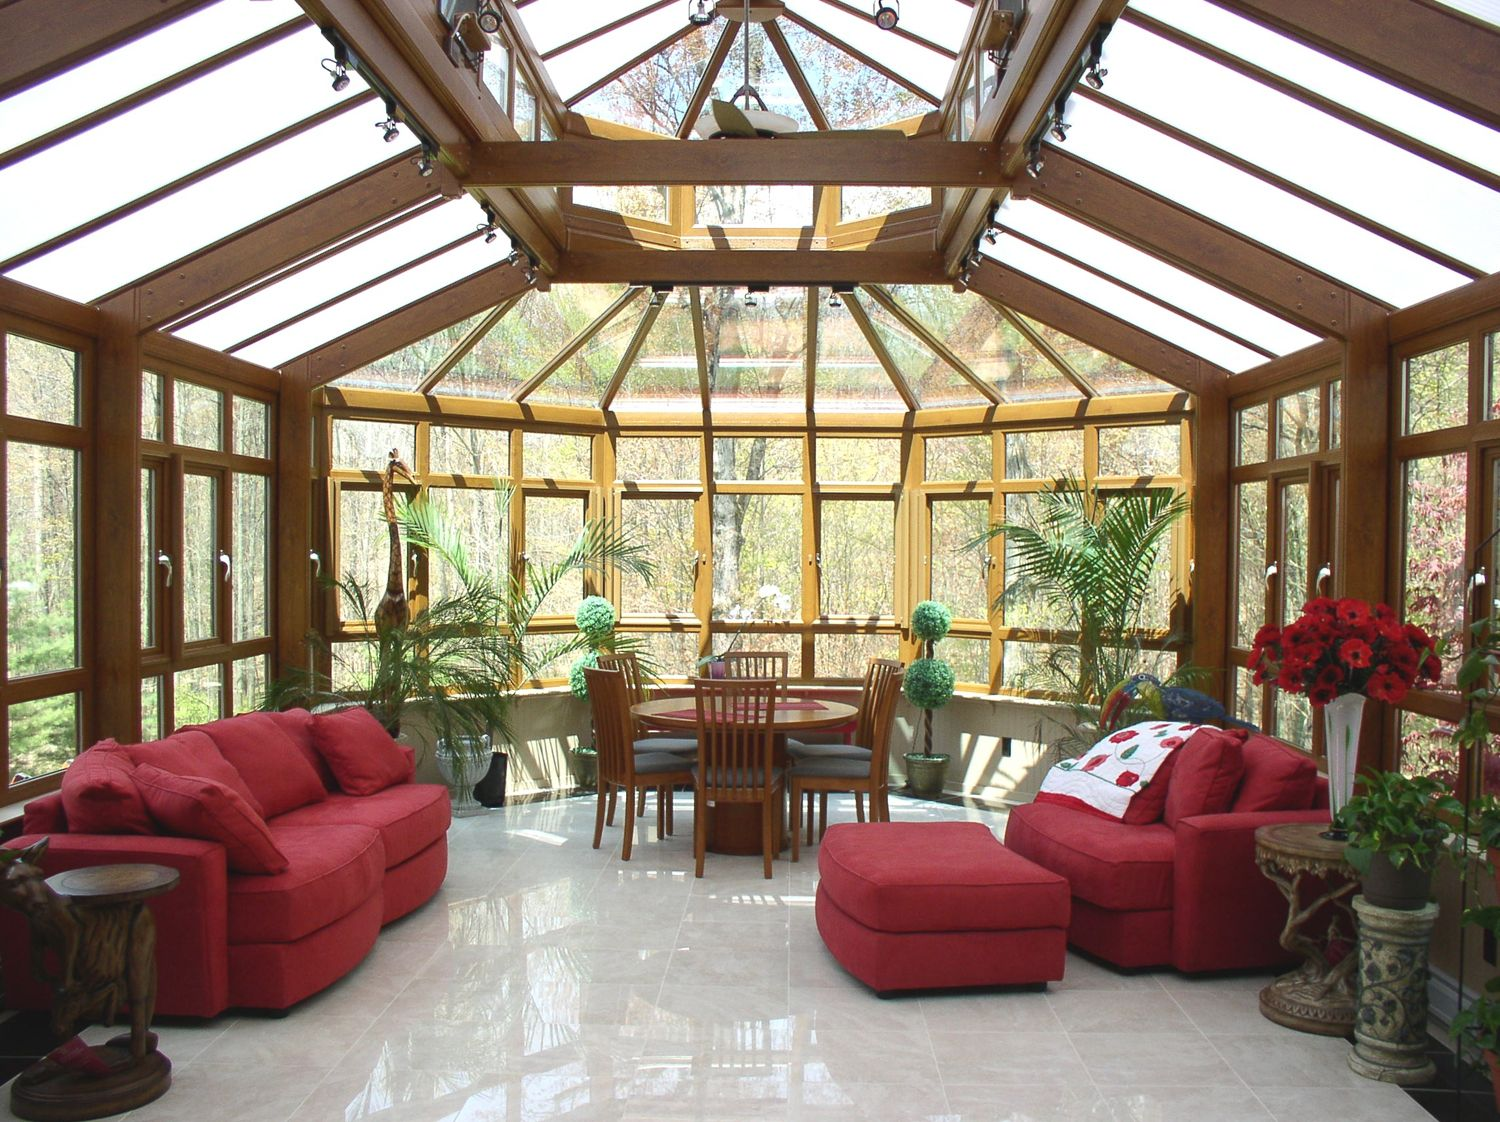 Sunroom. Awesome for cold winter days, and thunder storms! :)